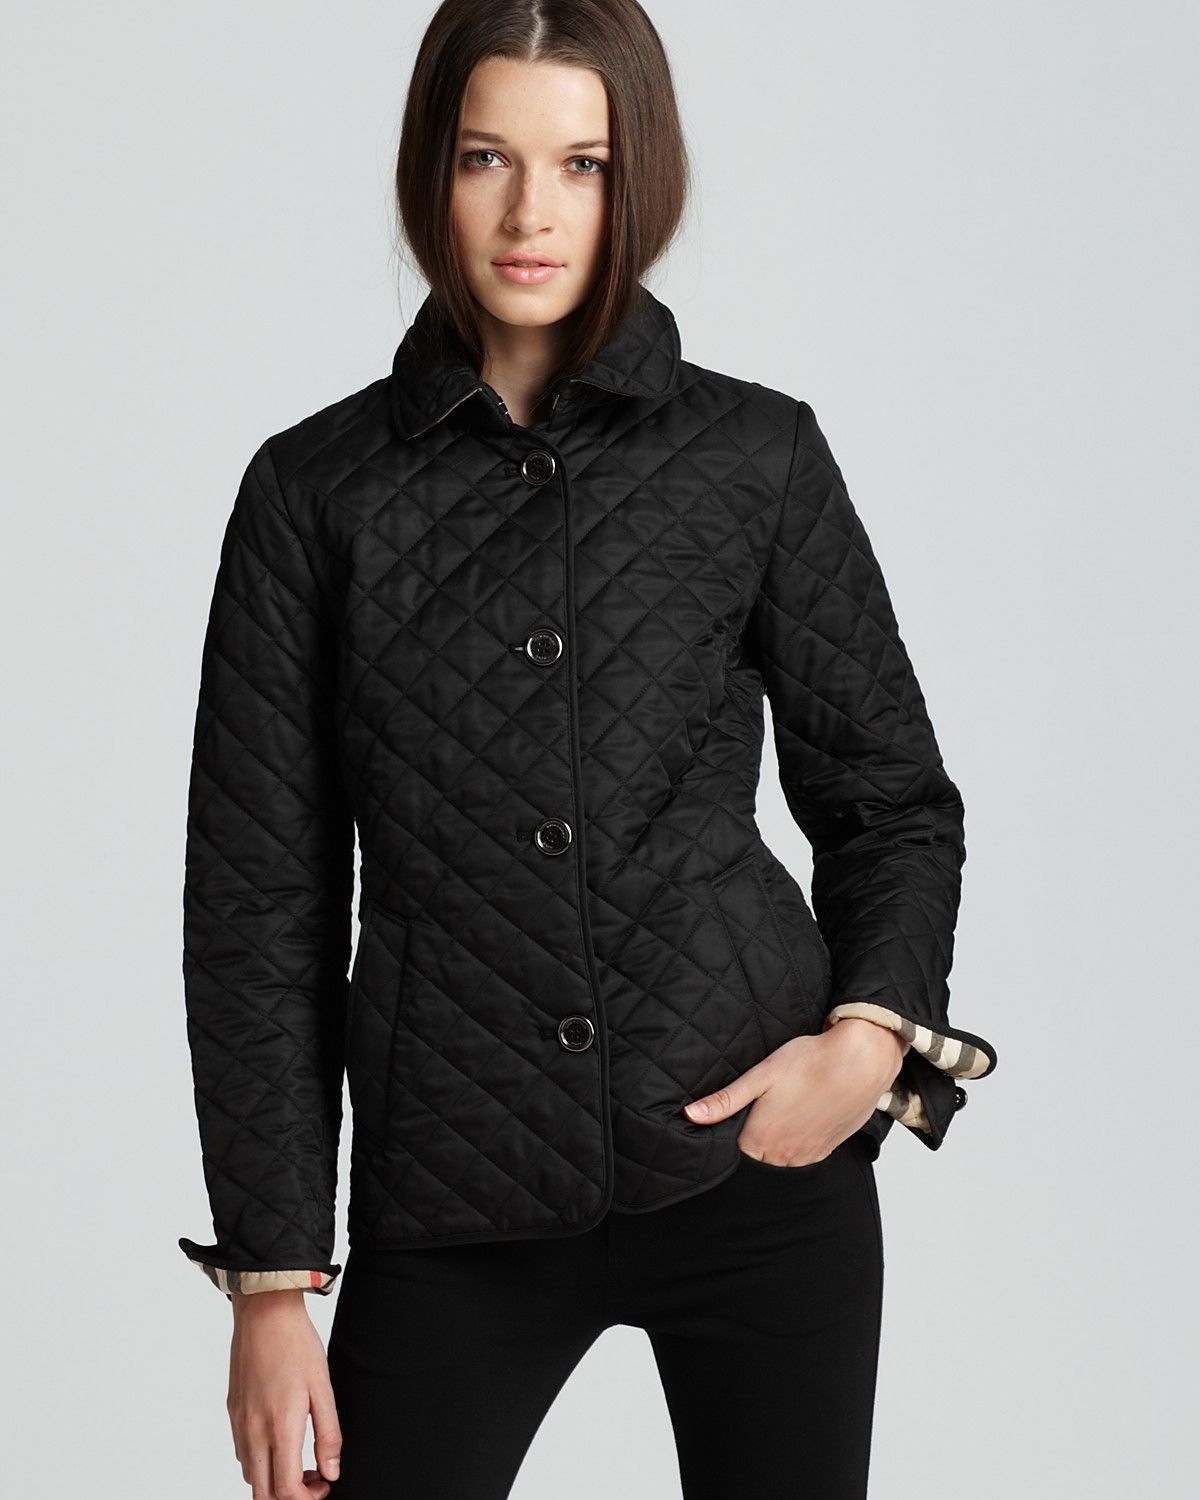 Burberry Brit Fitted Quilted Copford Jacket Bloomingdale S Womens Quilted Jacket Burberry Jacket Quilted Jacket